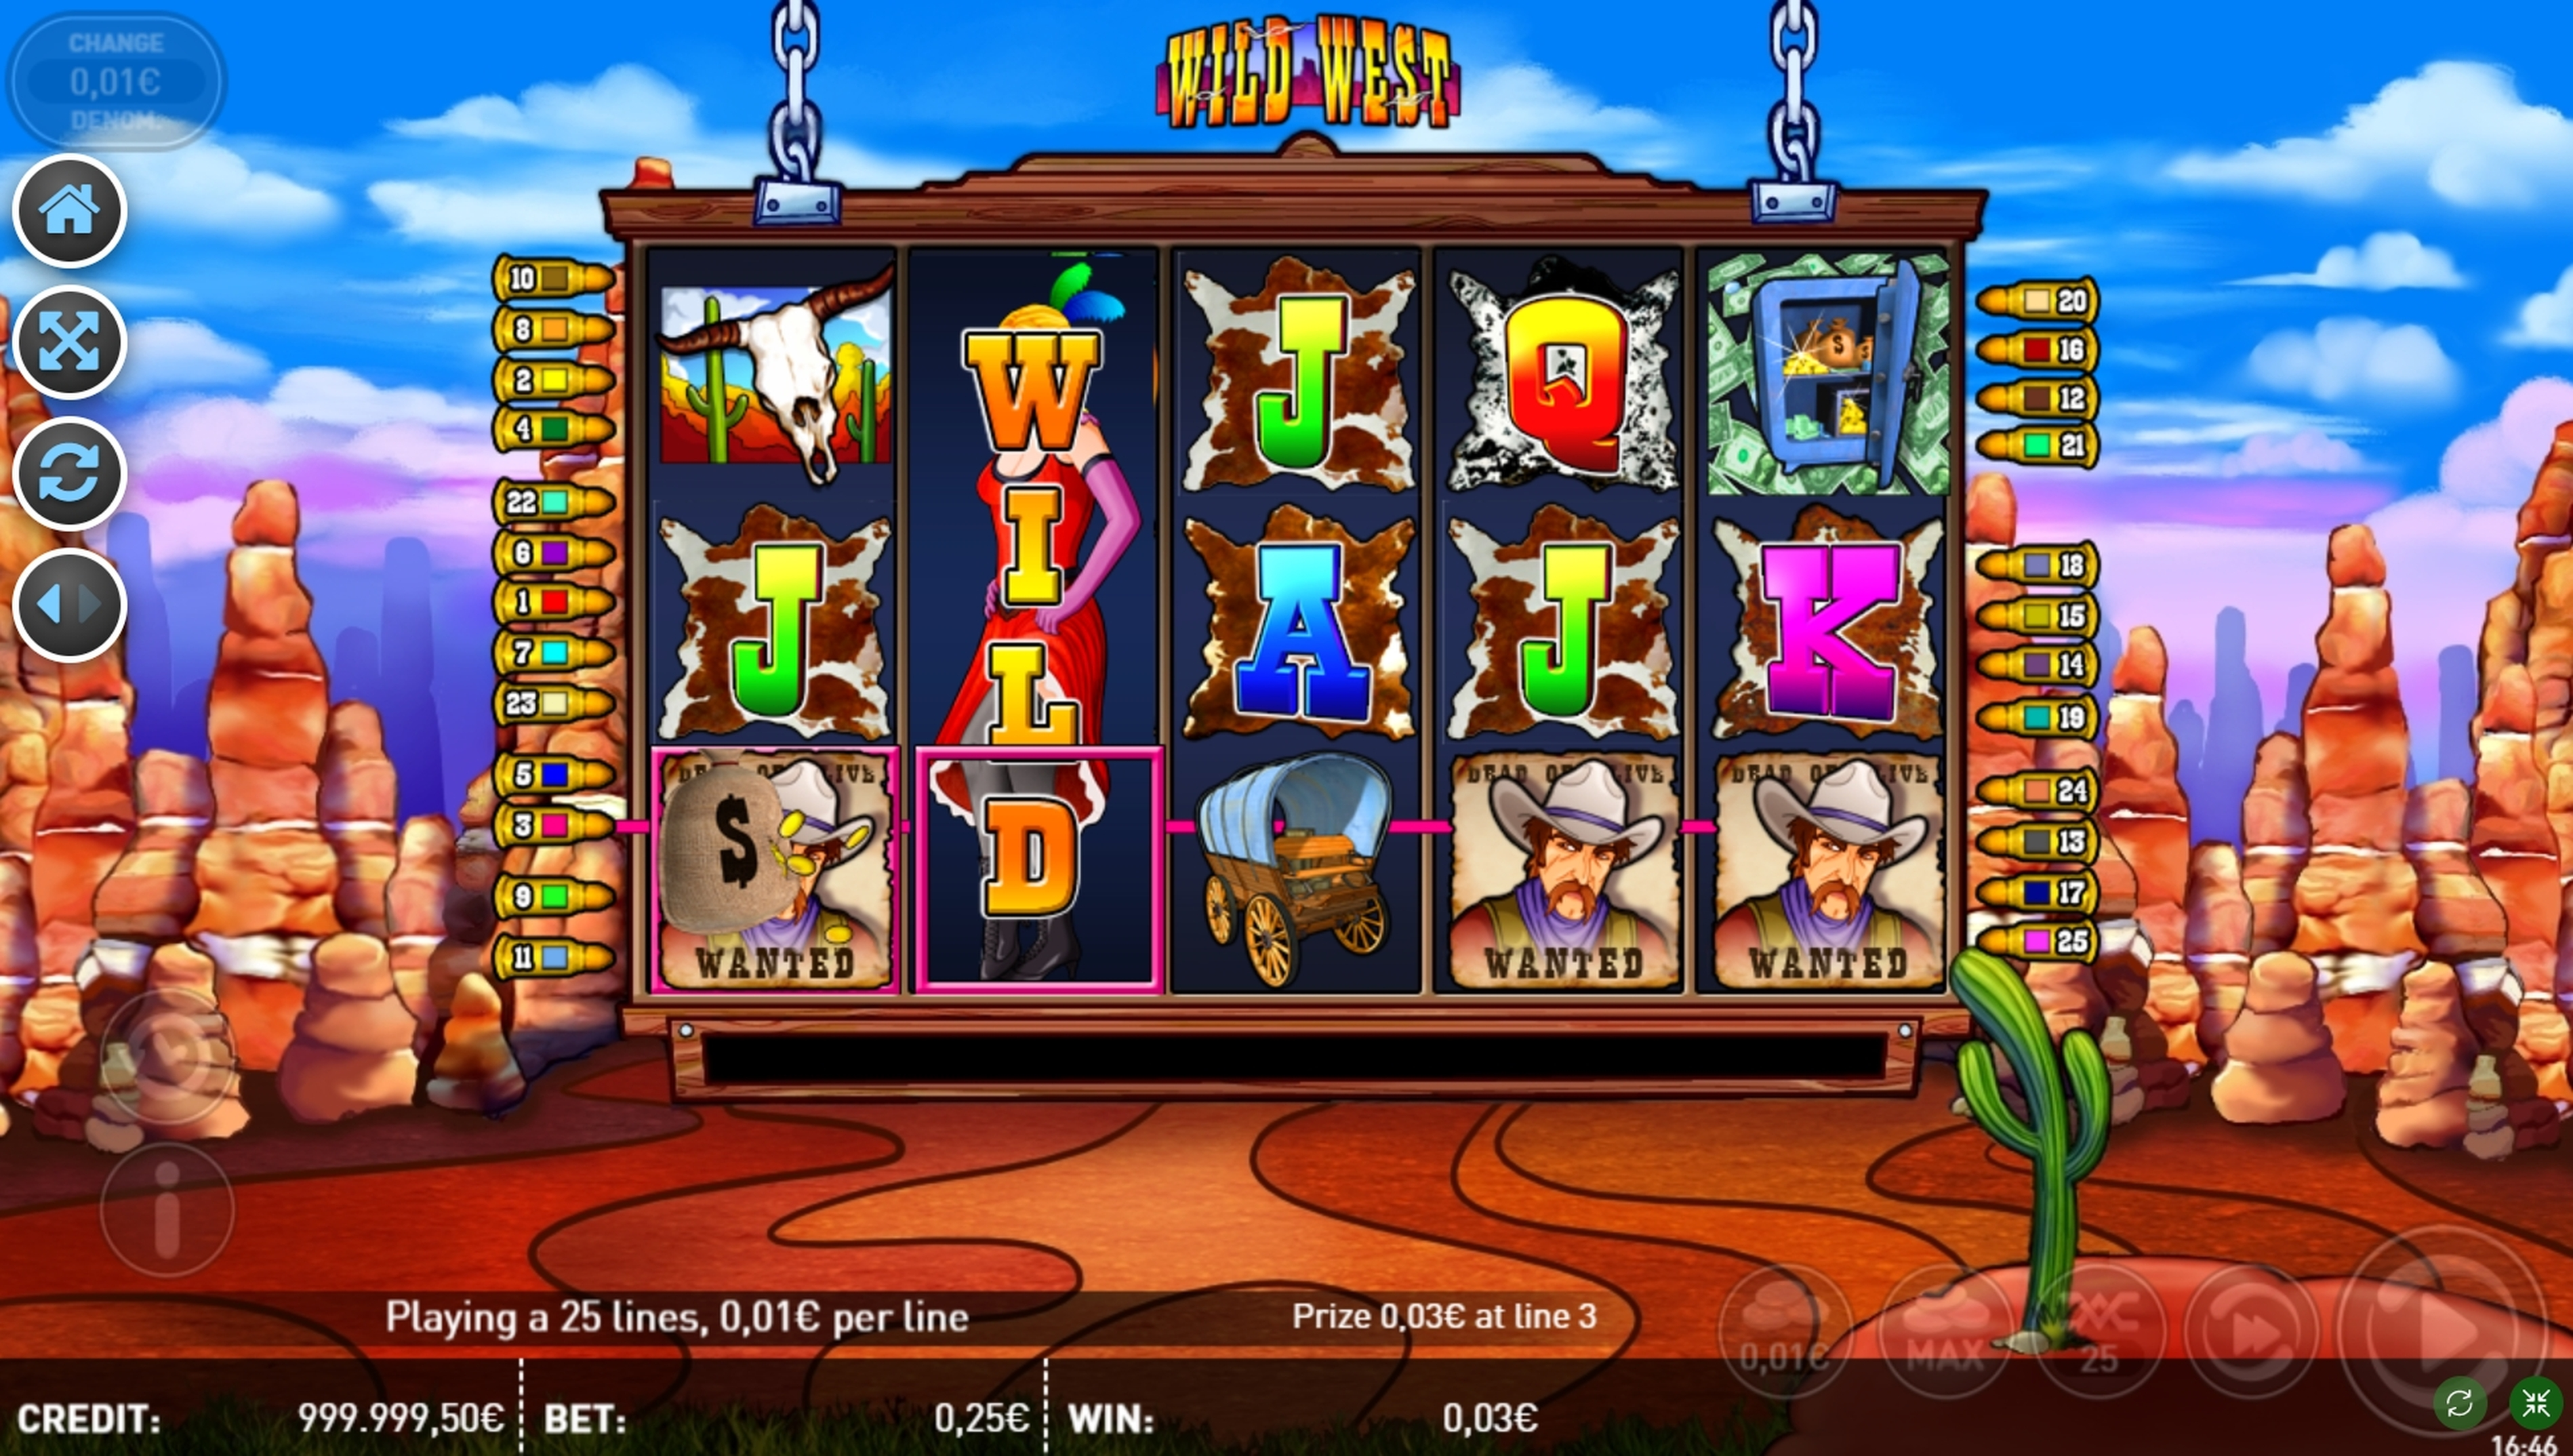 Win Money in Wild West (R. Franco) Free Slot Game by R. Franco